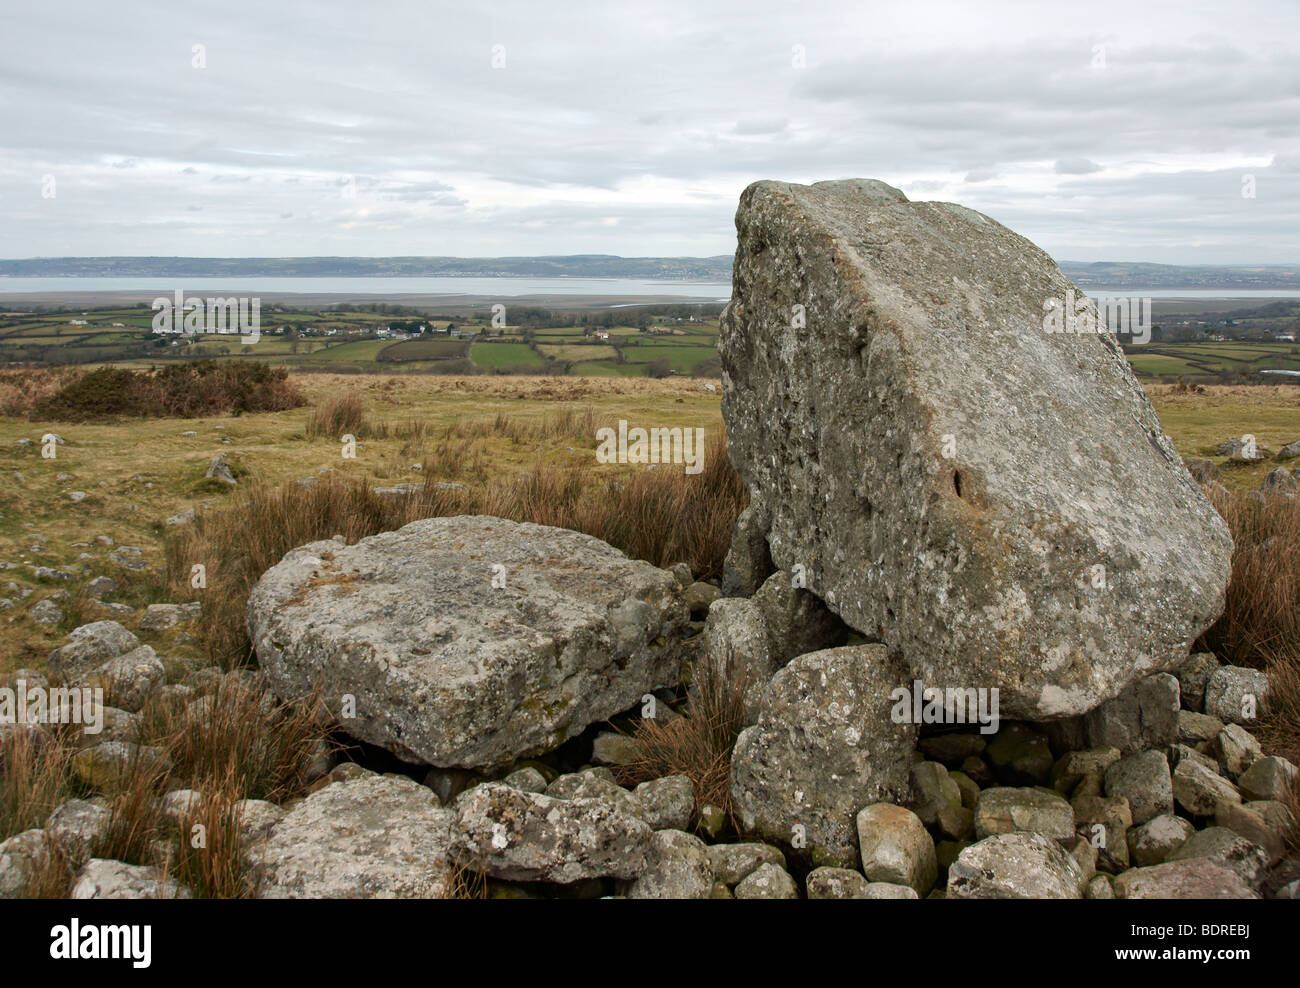 Arthur's Stone located near the summit of Cefn Bryn on the Gower Peninsula in South Wales - Stock Image